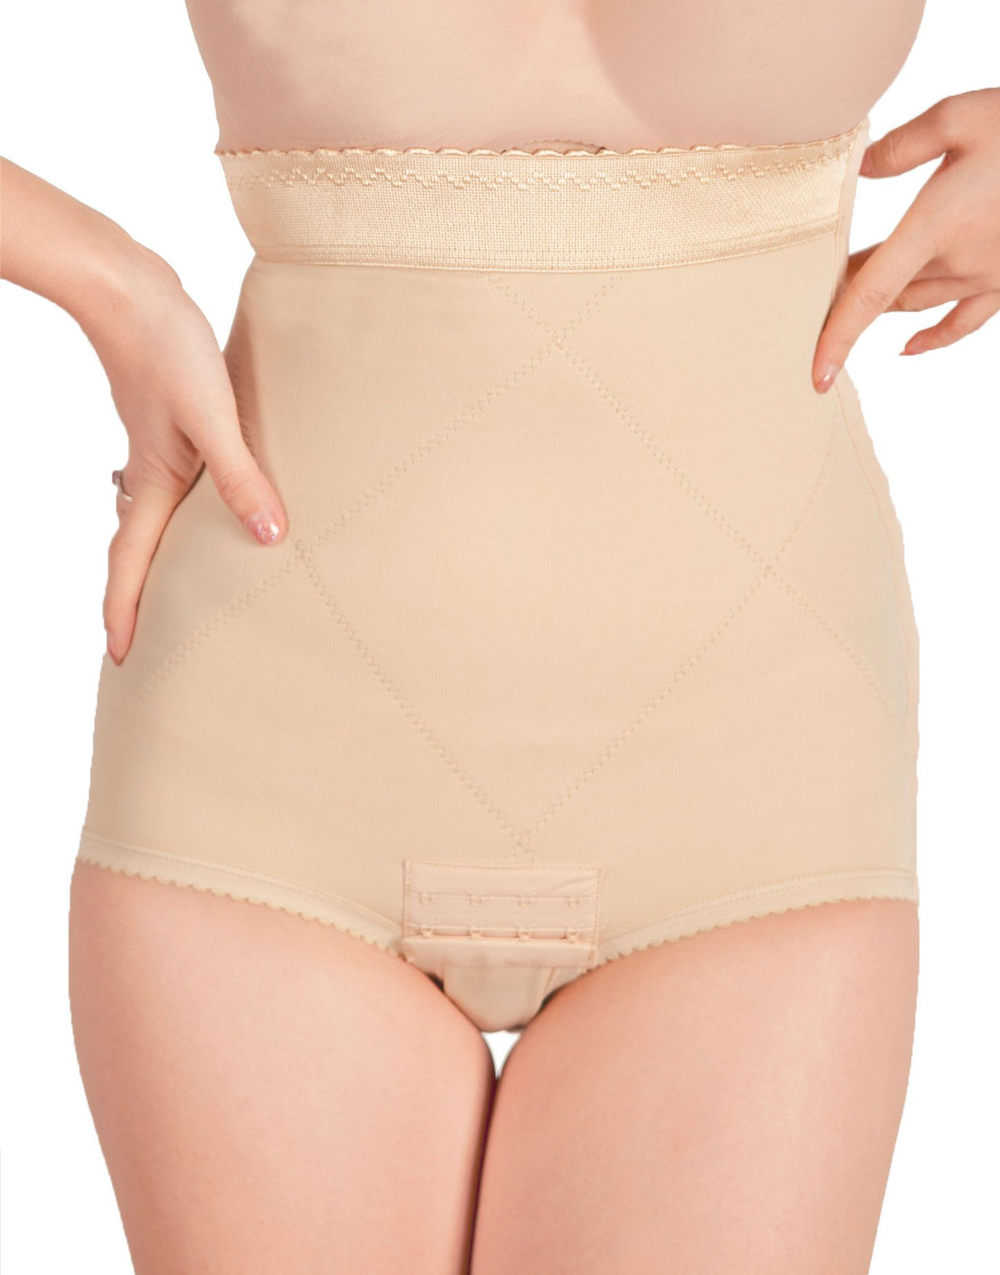 Postpartum Ultra Bikini in Nude by Wink Shapewear | SMALL